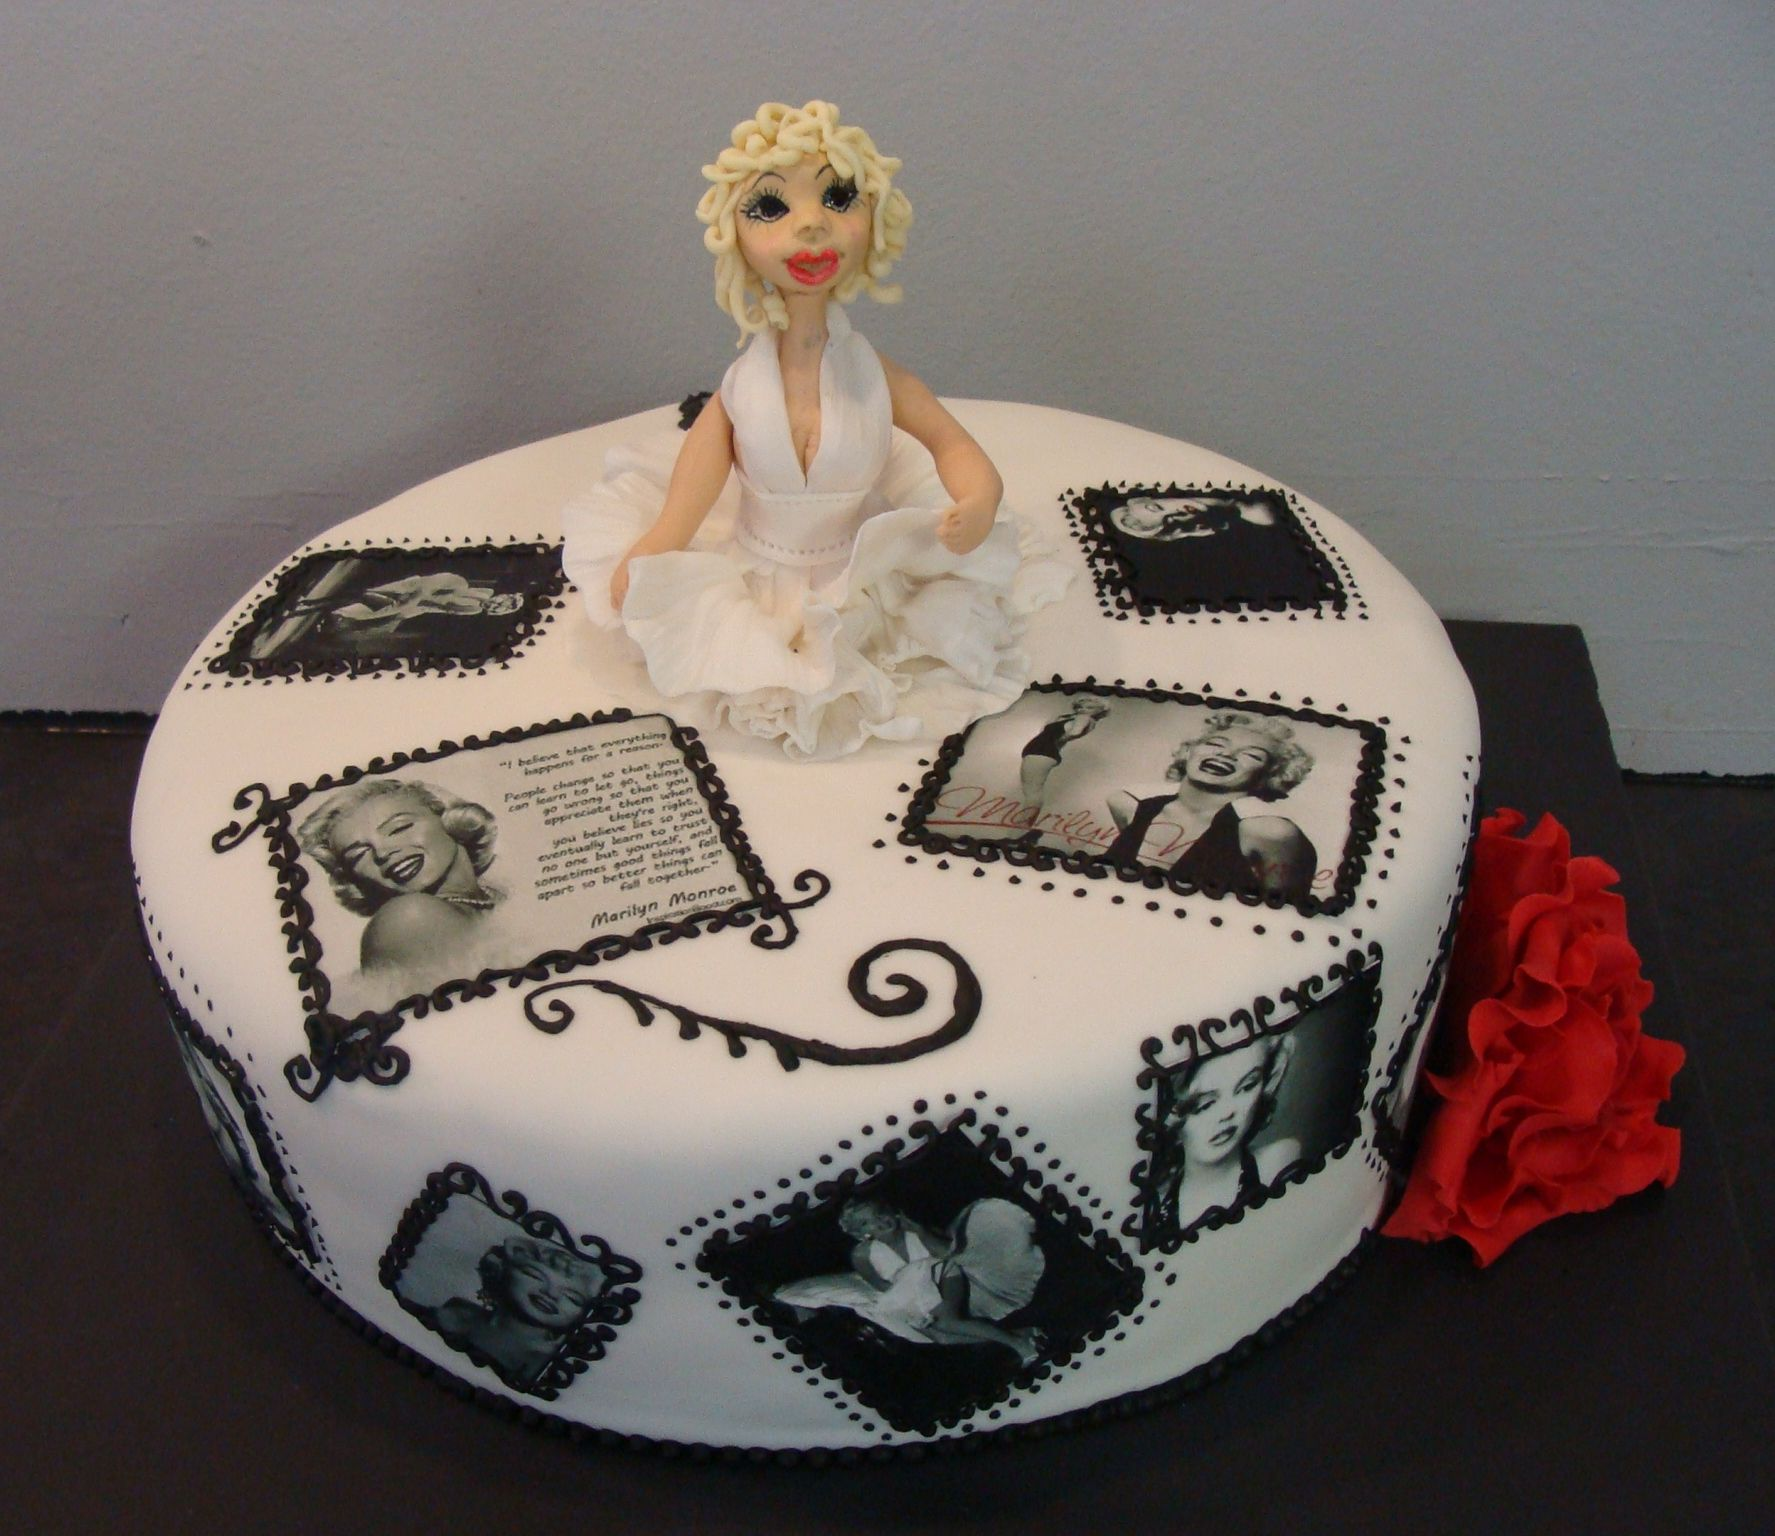 Marilyn Monroe Cake I Want This Cake For My Birthday Cakes